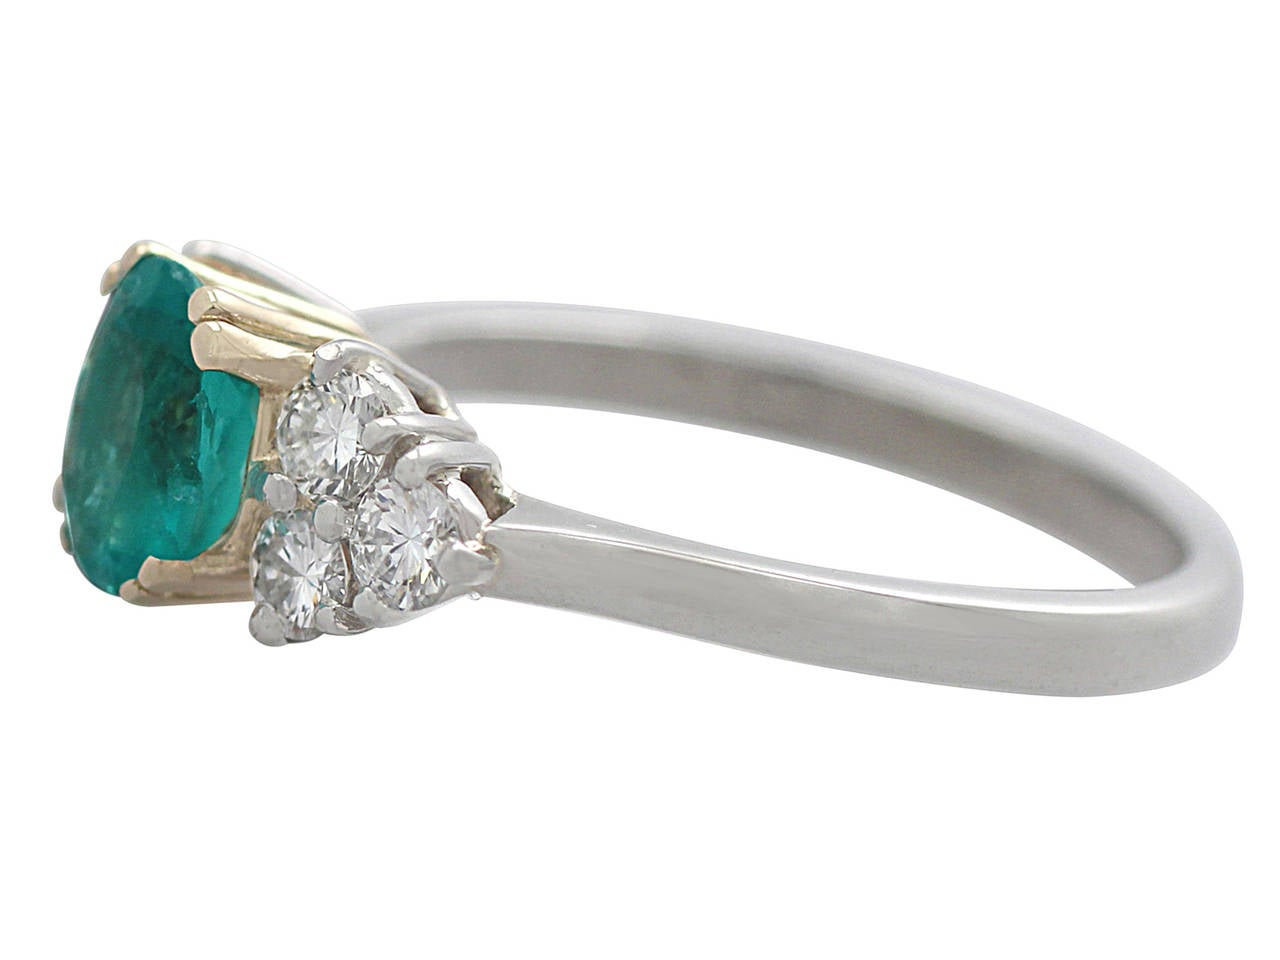 1990s 1.06 Carat Emerald and Diamond Platinum Cocktail Ring 4